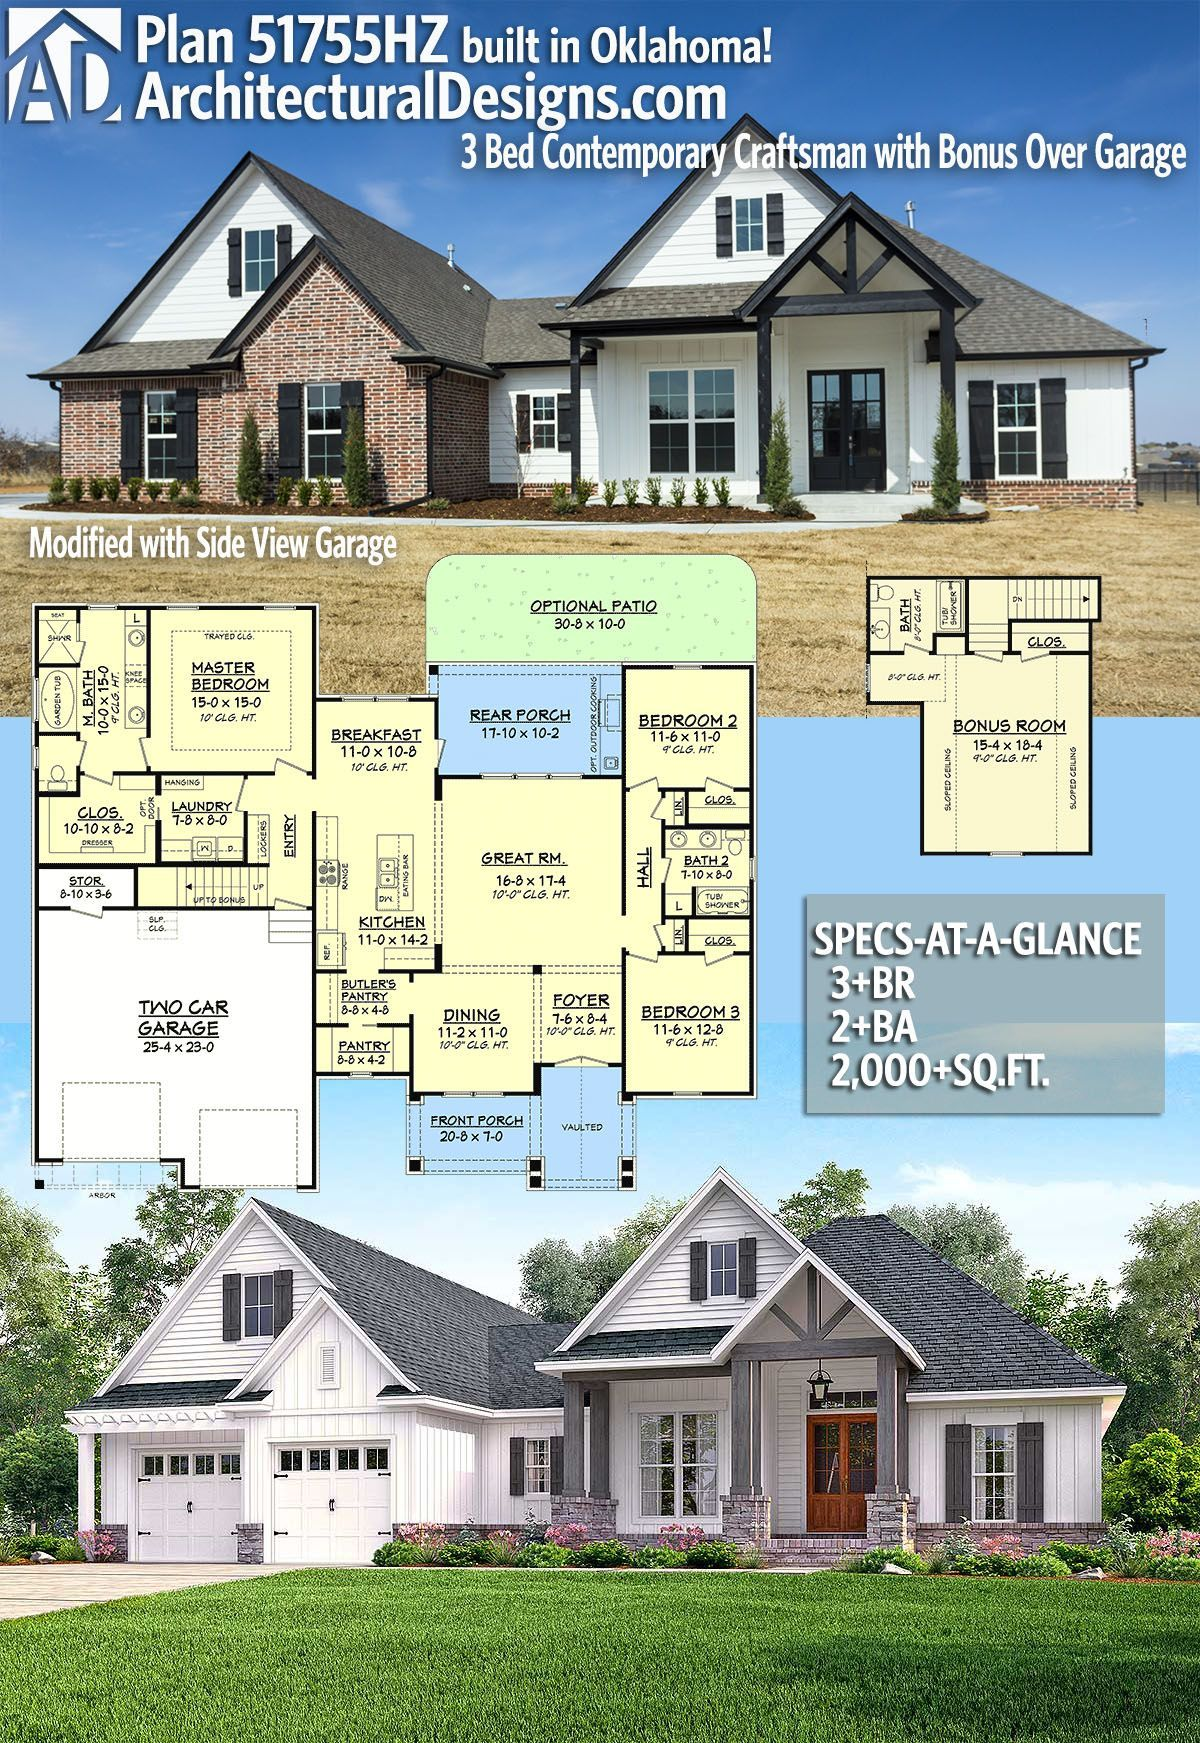 Architectural Designs Craftsman House Plan 51755hz Client Built In Oklahoma 3 Br 4 Ba 2 000 Sq Ft R Craftsman House Plans Craftsman House House Plans